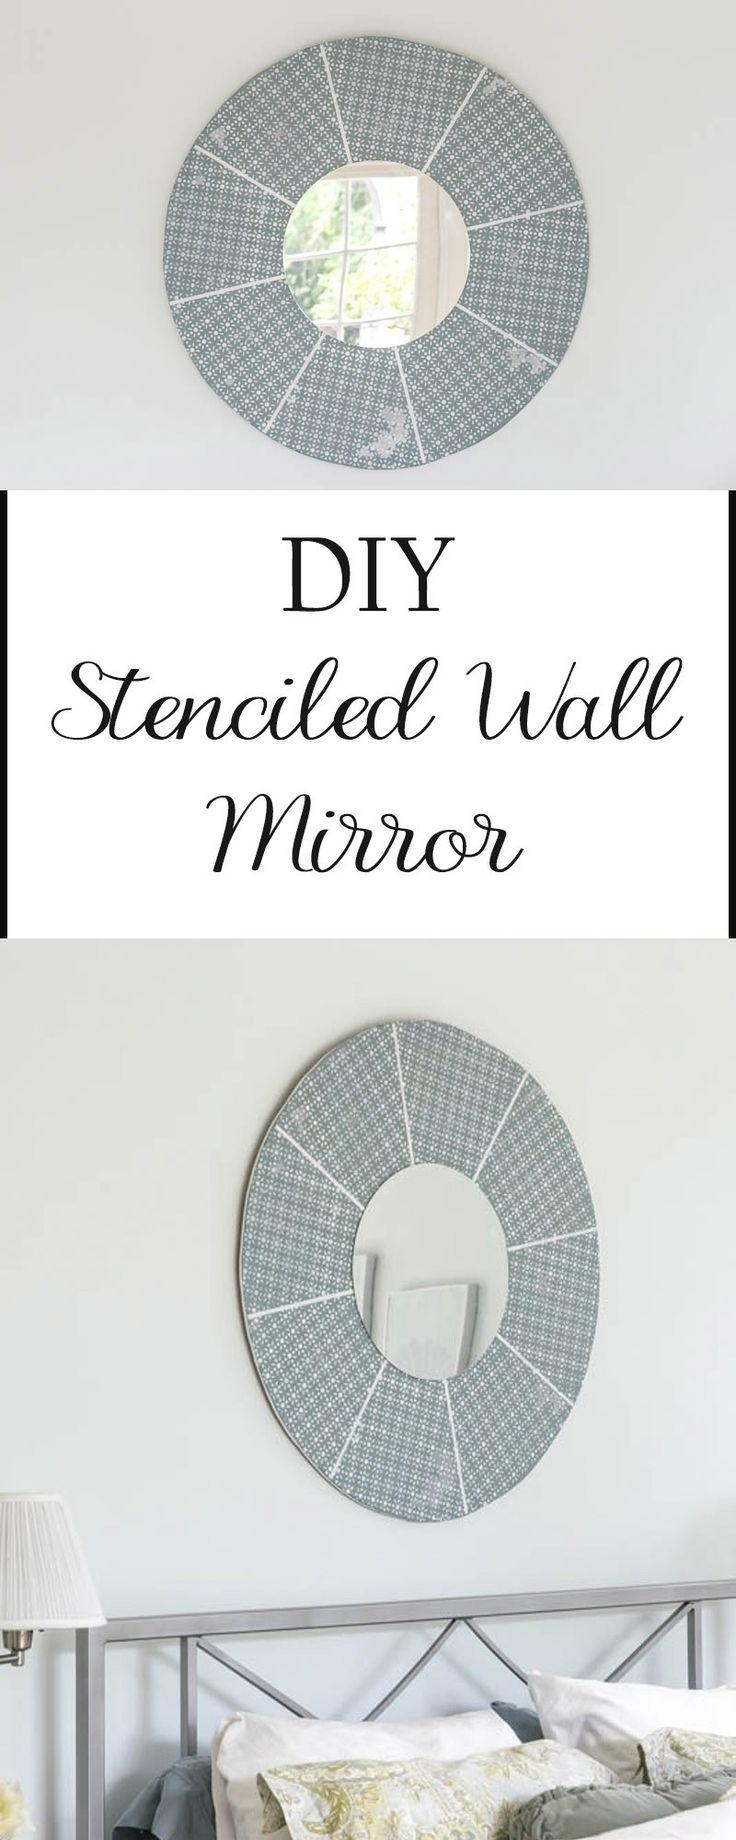 The 25+ Best Small Round Mirrors Ideas On Pinterest | Small Hall Intended For Small Round Mirrors Wall Art (View 14 of 20)